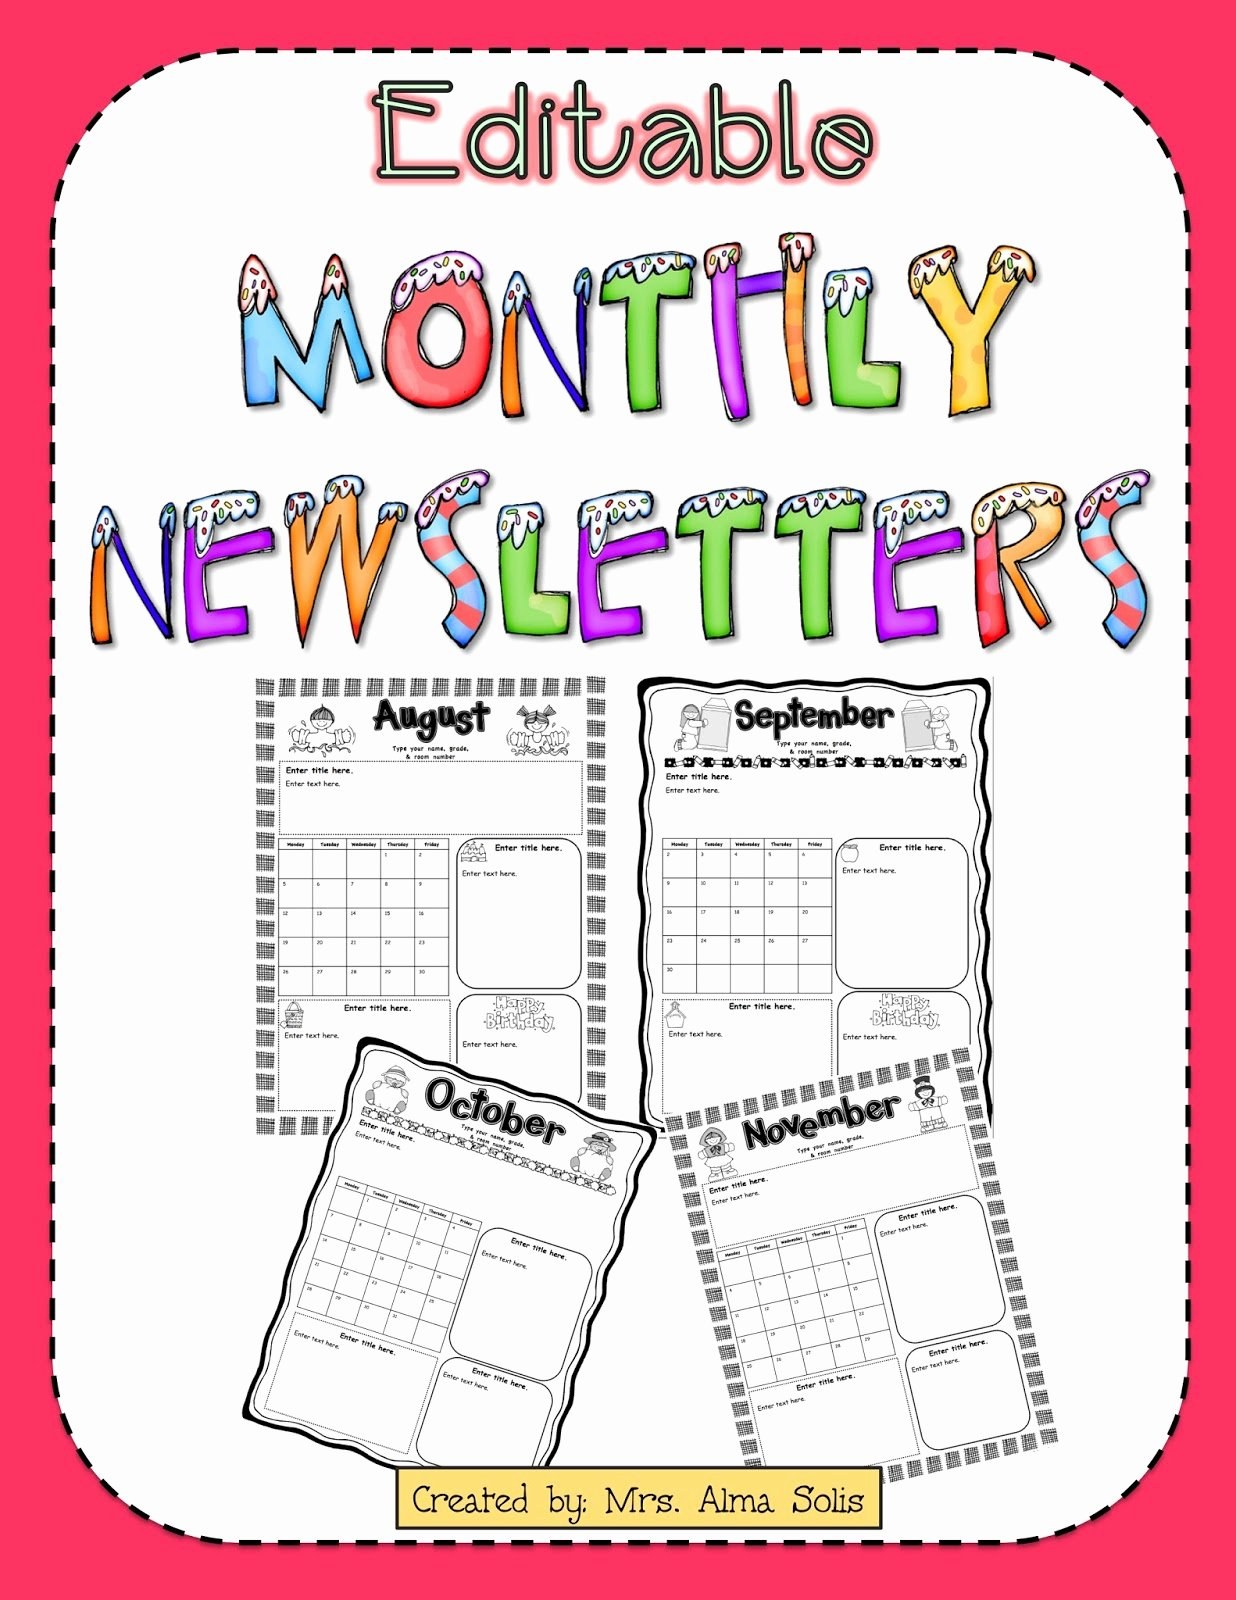 School Newsletter Template Free Best Of Mrs solis S Teaching Treasures Monthly Newsletters